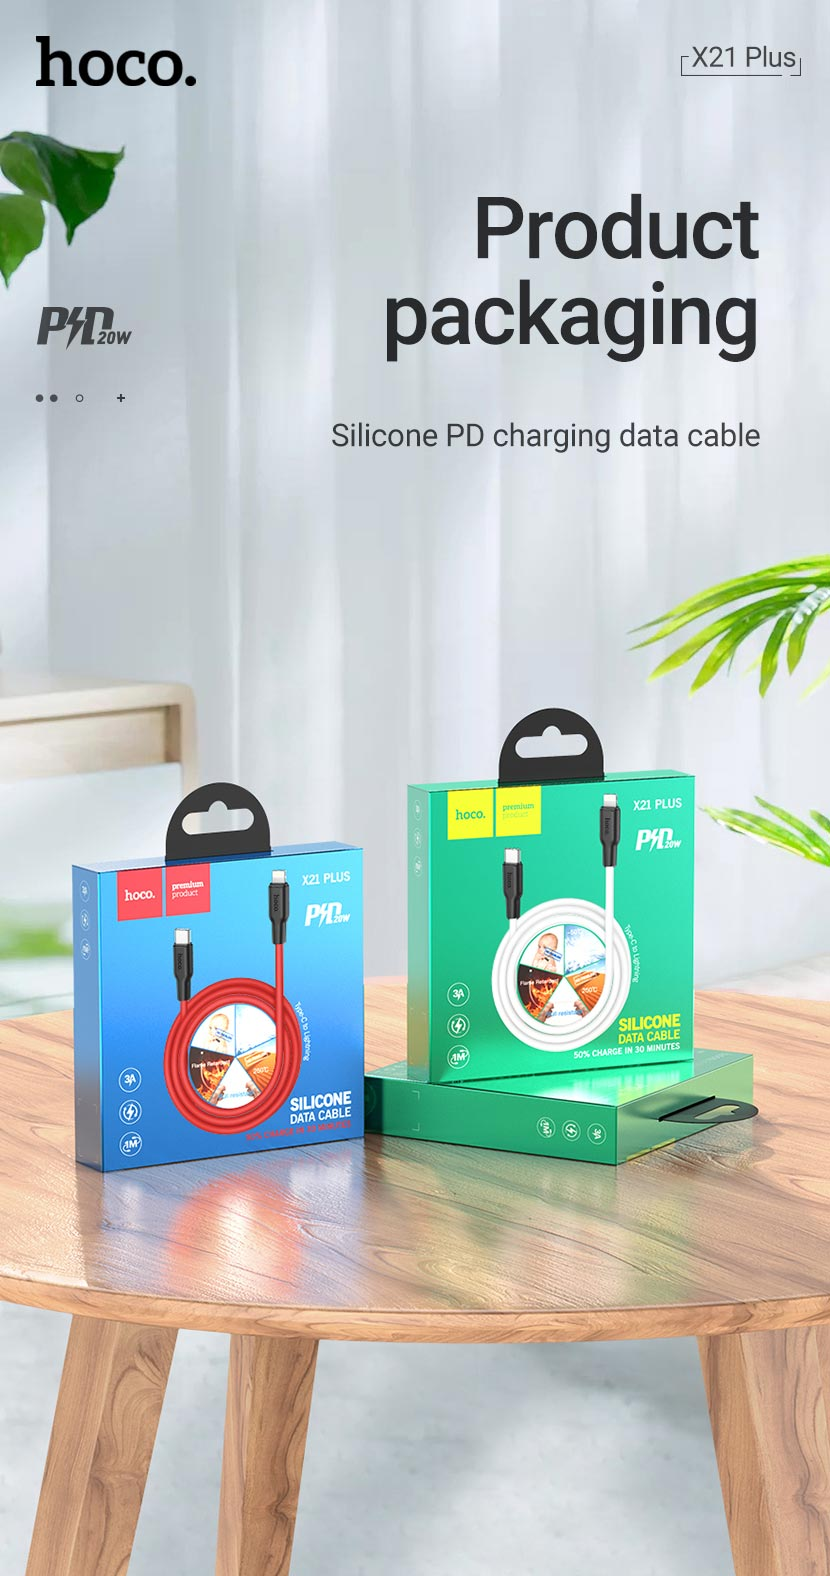 hoco news x21 plus silicone pd charging data cable package en